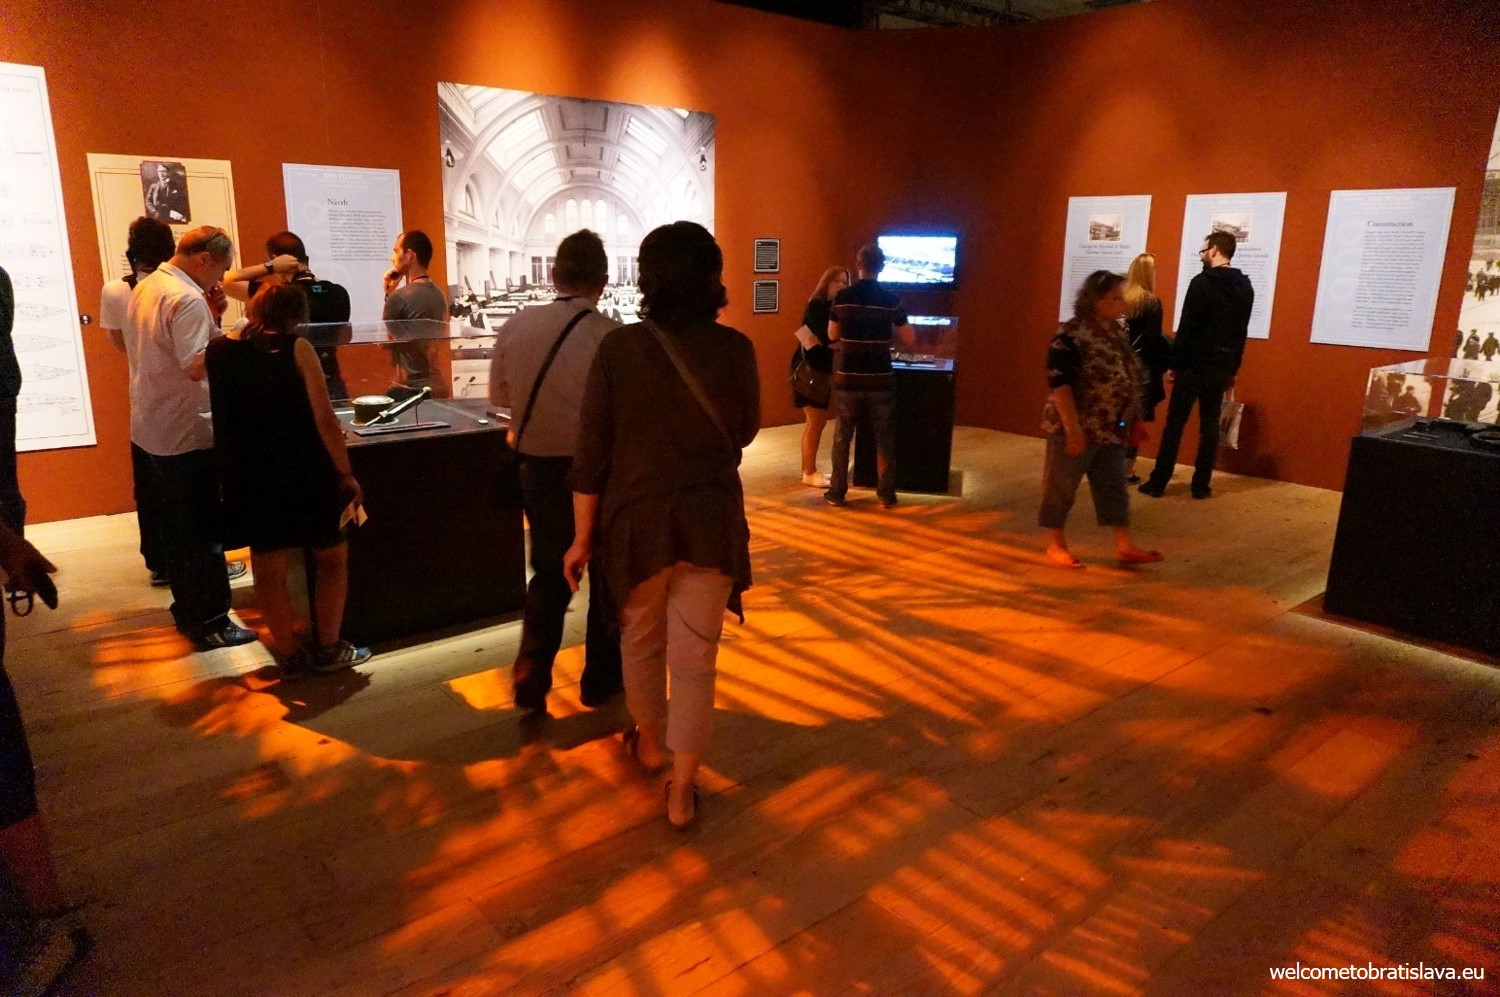 The whole exhibition is prepared in a way to make you feel as being a particular voyager on the board of Titanic.